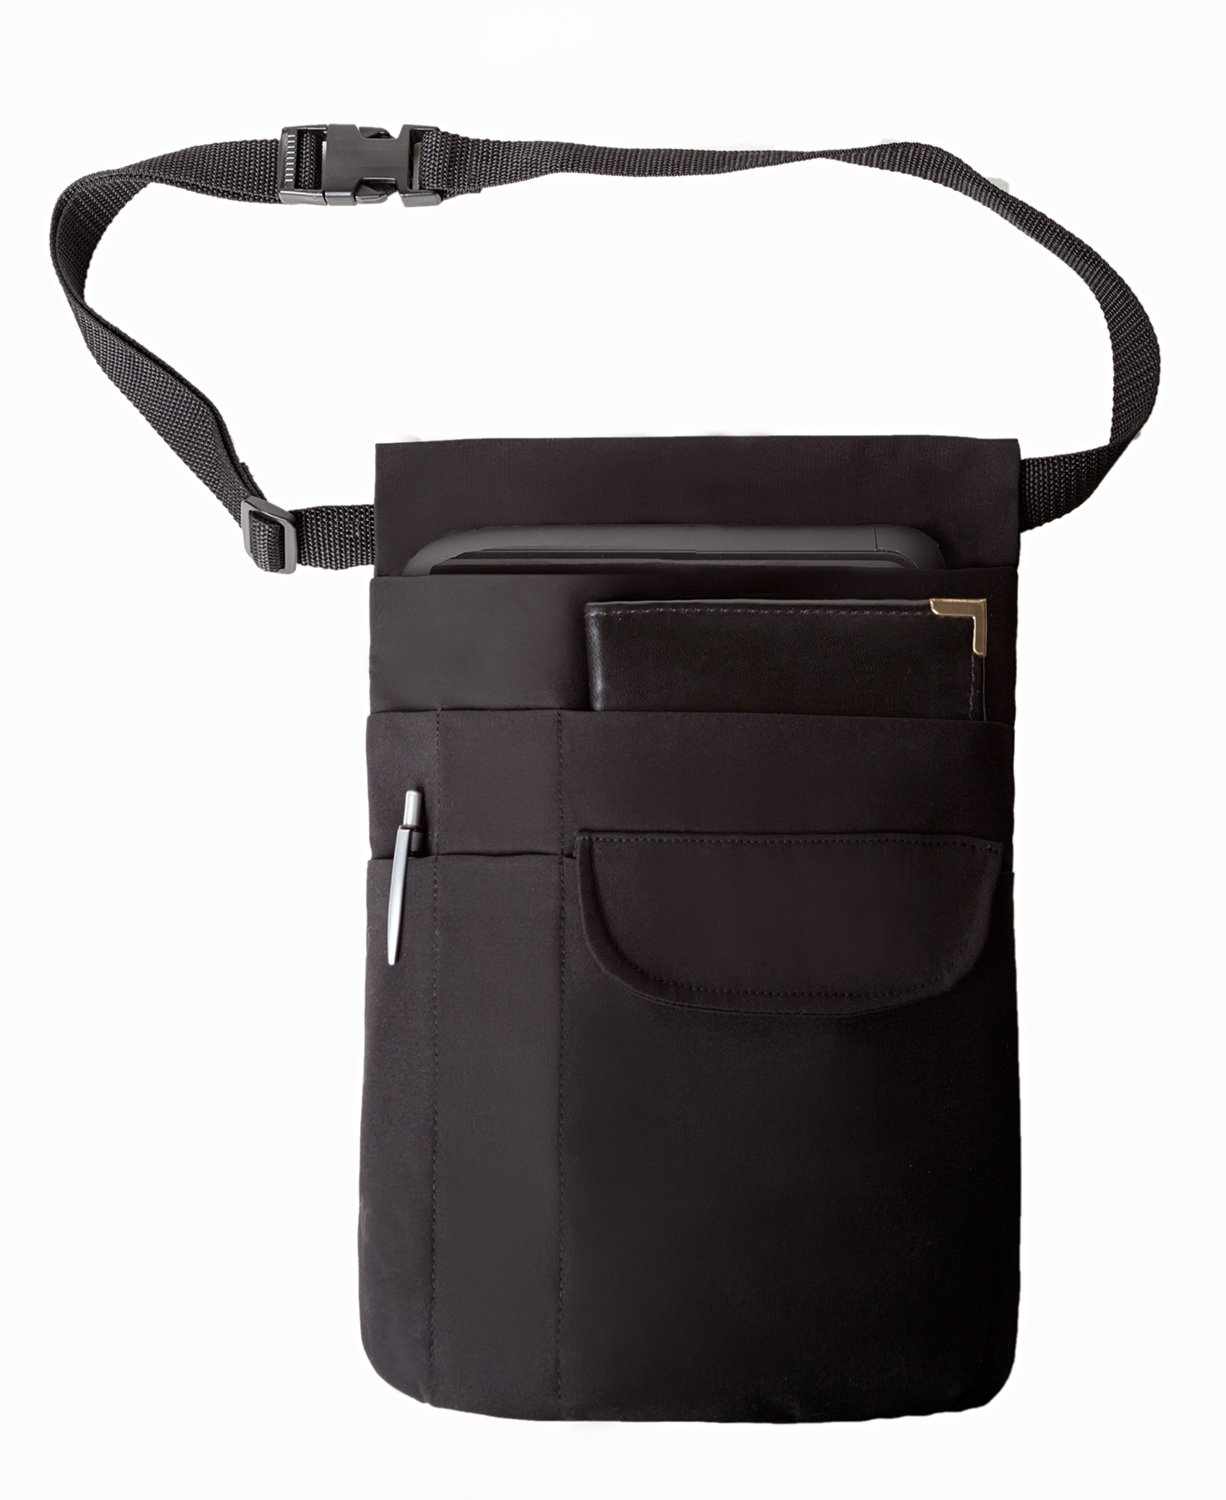 Extra Large Tablet Pouch Holster w/Belt Fits Extra Large Tablets